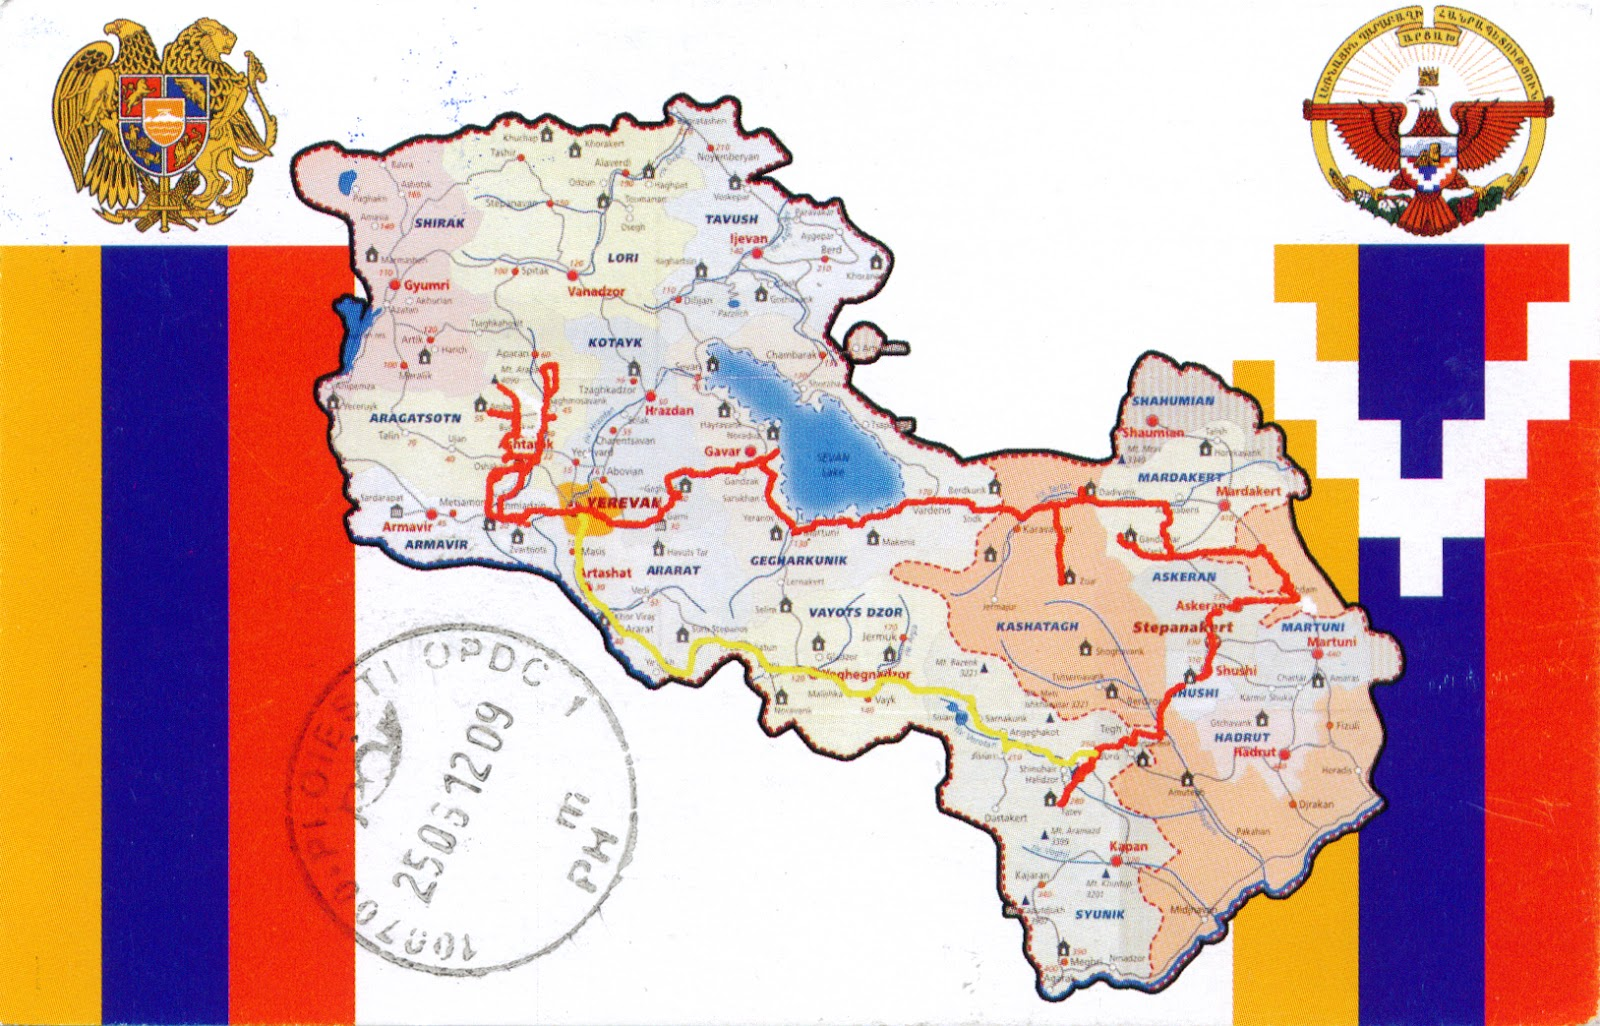 WORLD COME TO MY HOME 0262 ARMENIA The map and the flag of the